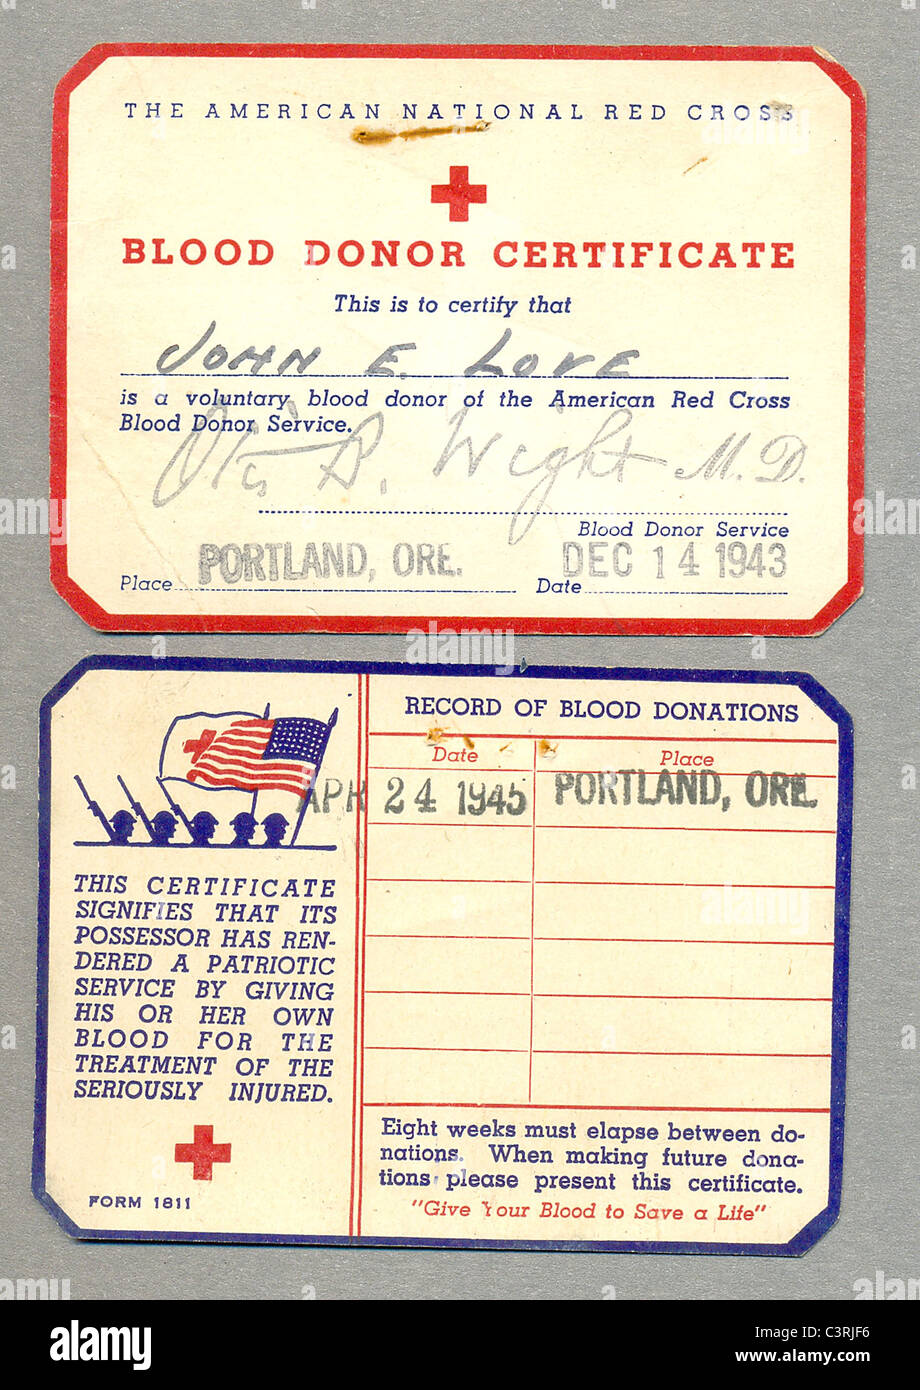 blood donor certificate and record